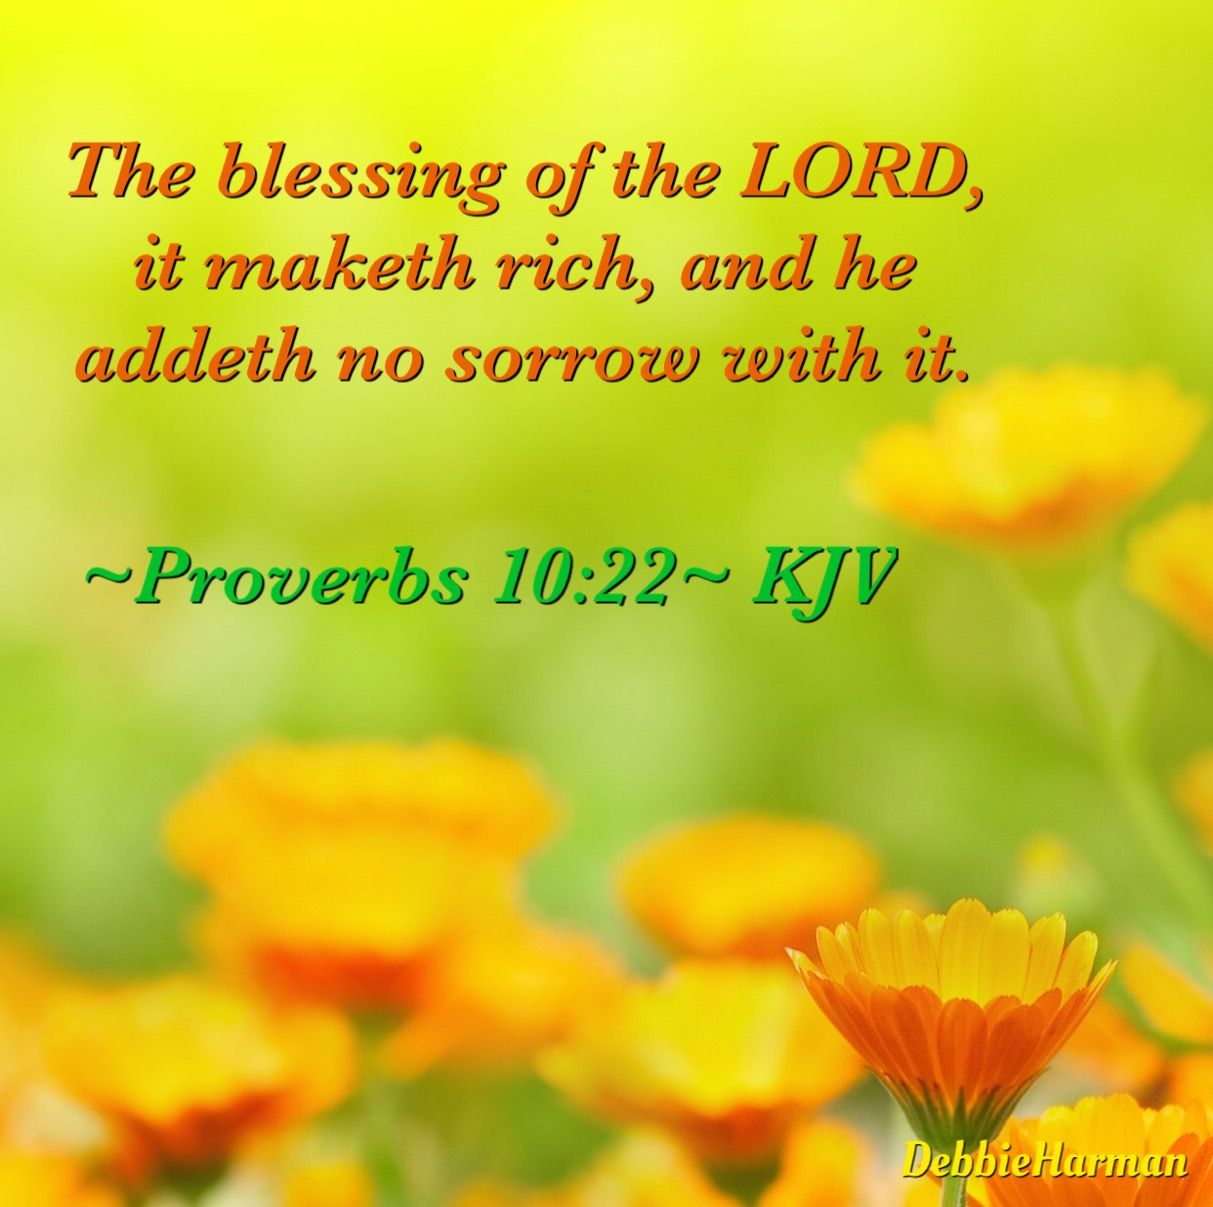 Proverbs 10:22~ KJV. The blessing of the LORD, it maketh rich, and he addeth no sorrow with it.   I love the lord,  Proverbs 10, Greatest commandment